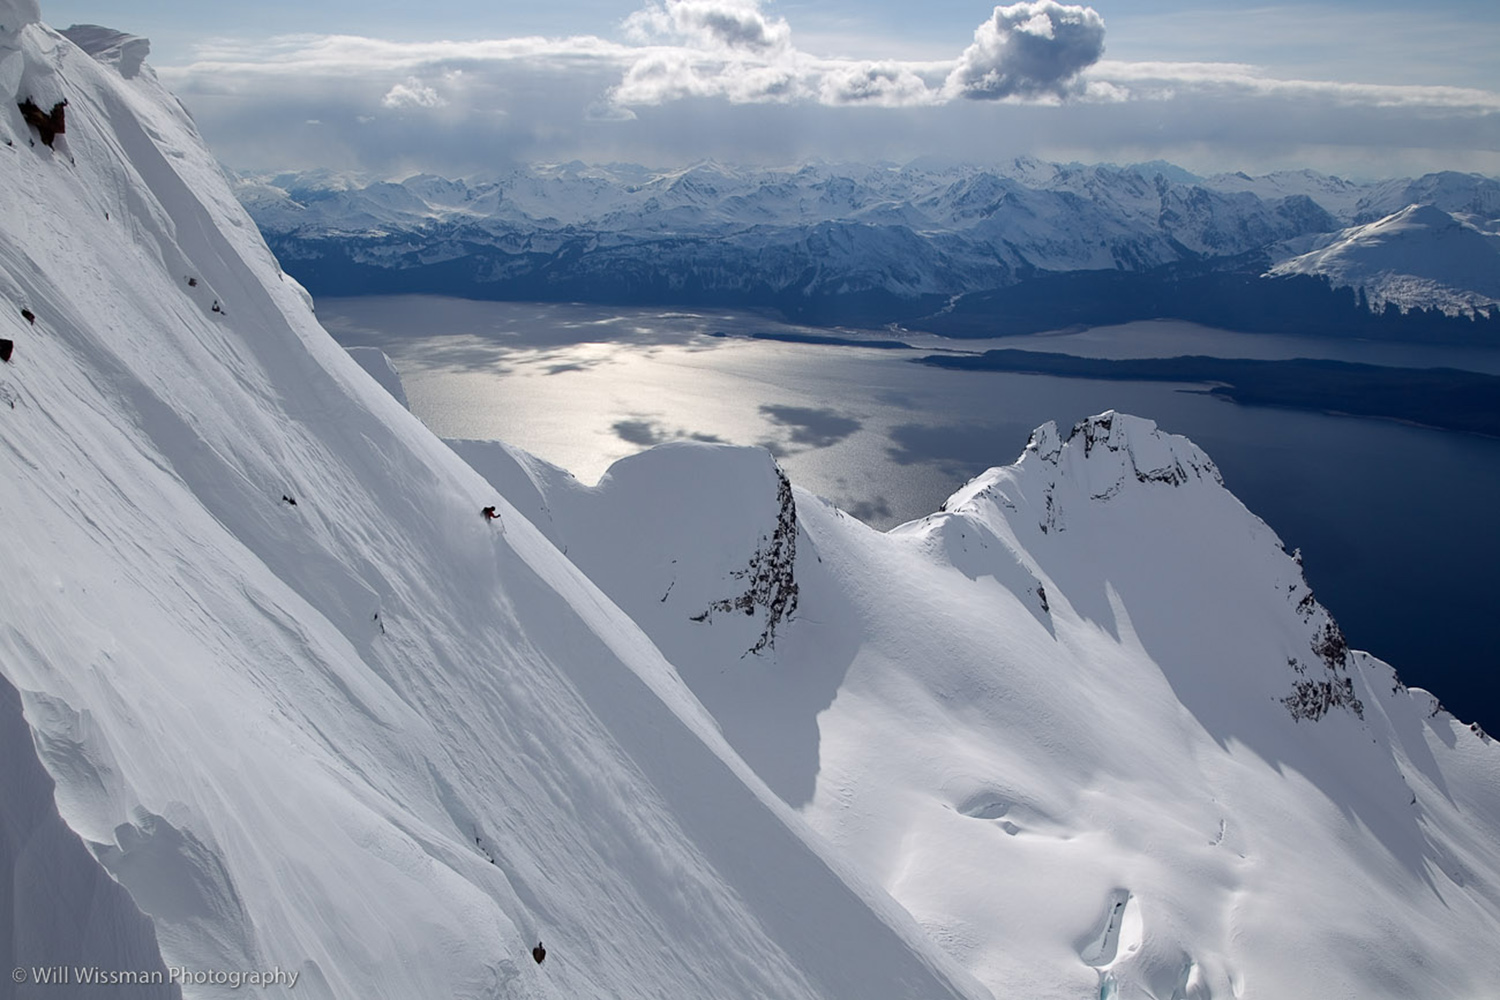 One of the best terrain in the list of heli ski destinations.